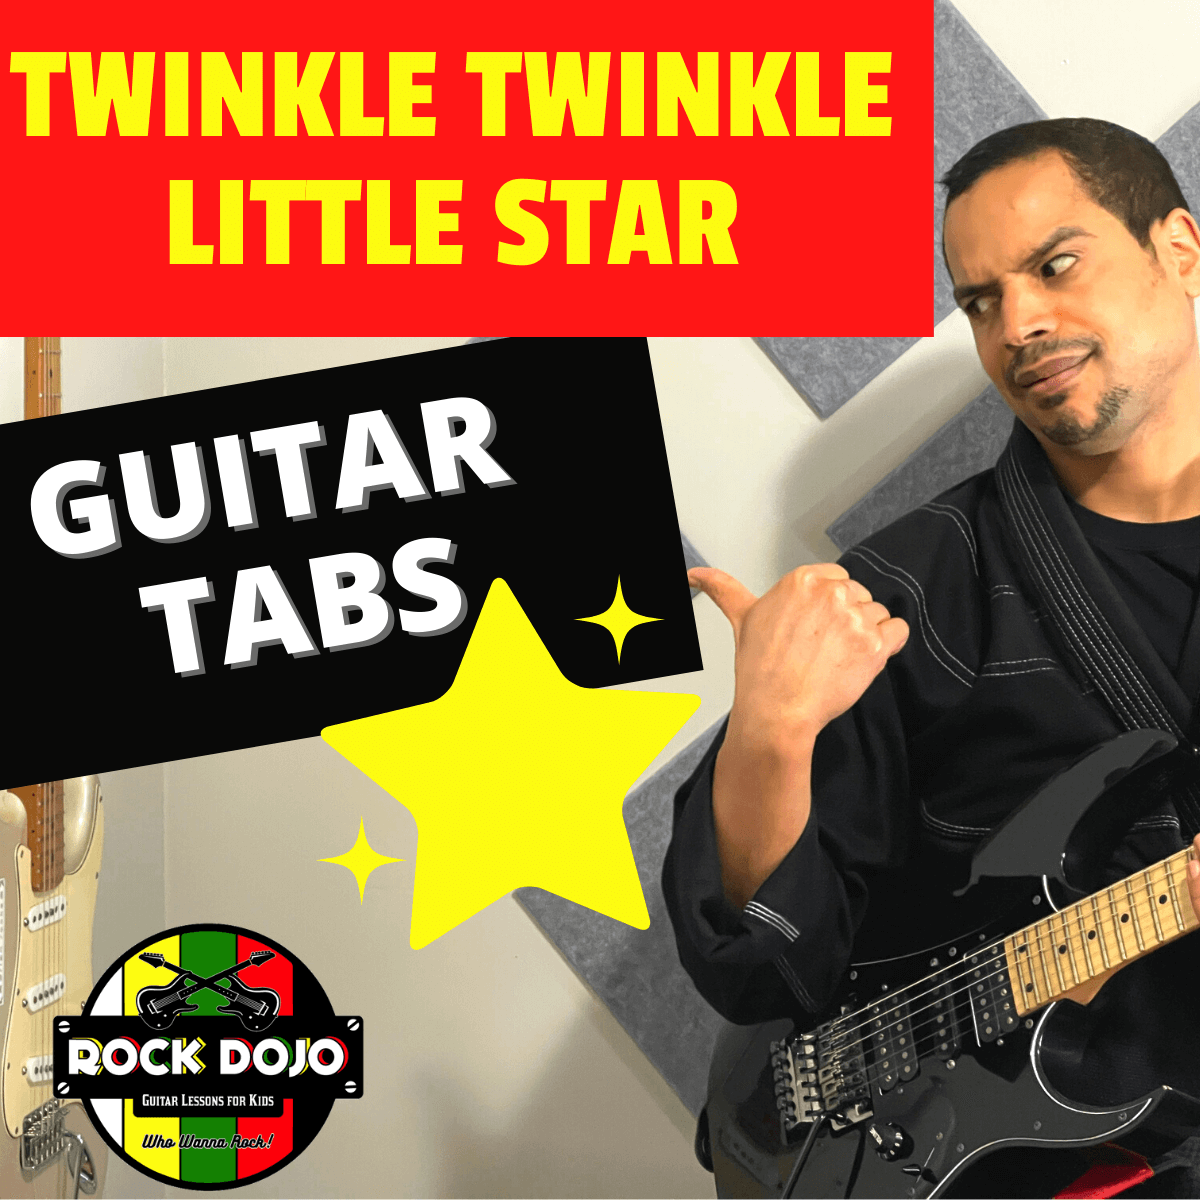 Twinkle Twinkle Little Star Guitar Lessons